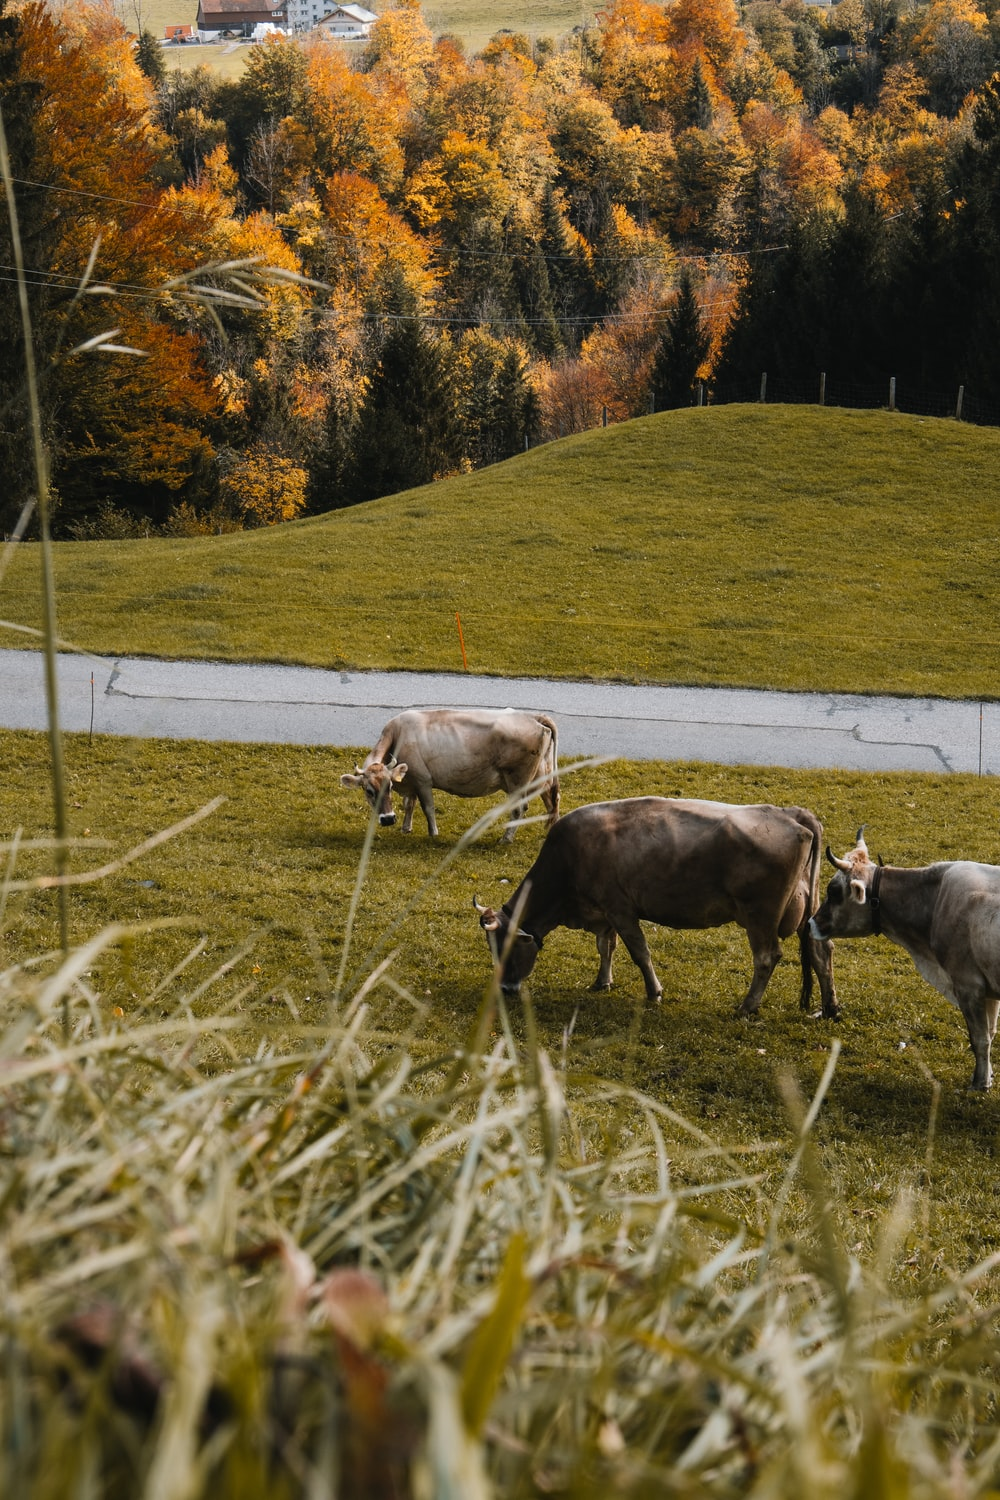 cattle on green field surrounded with green trees